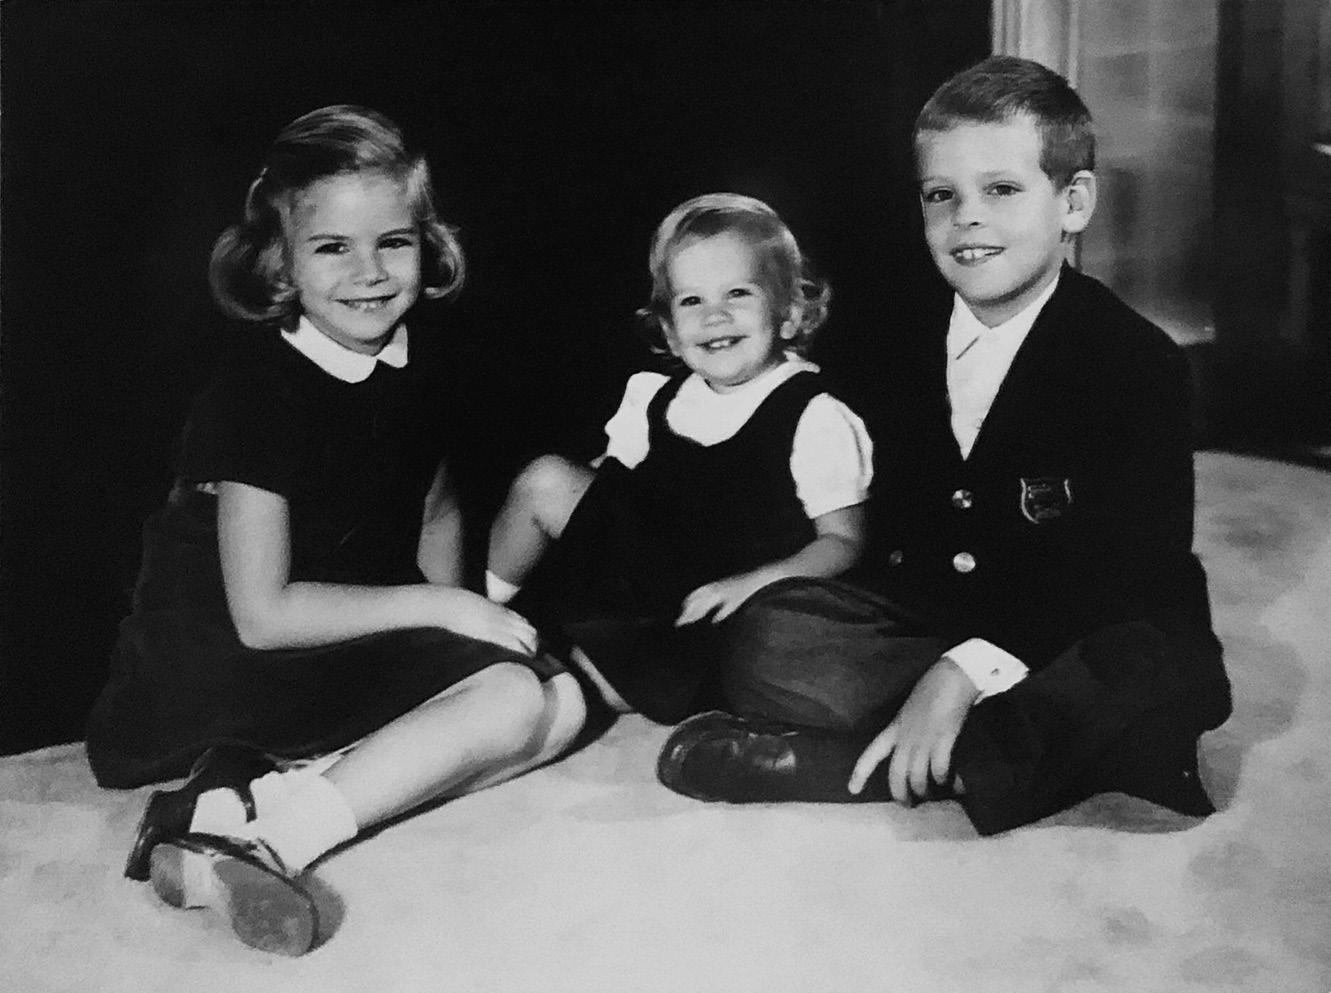 Rocky, age six, seated to the right of sisters Gail and Karey.